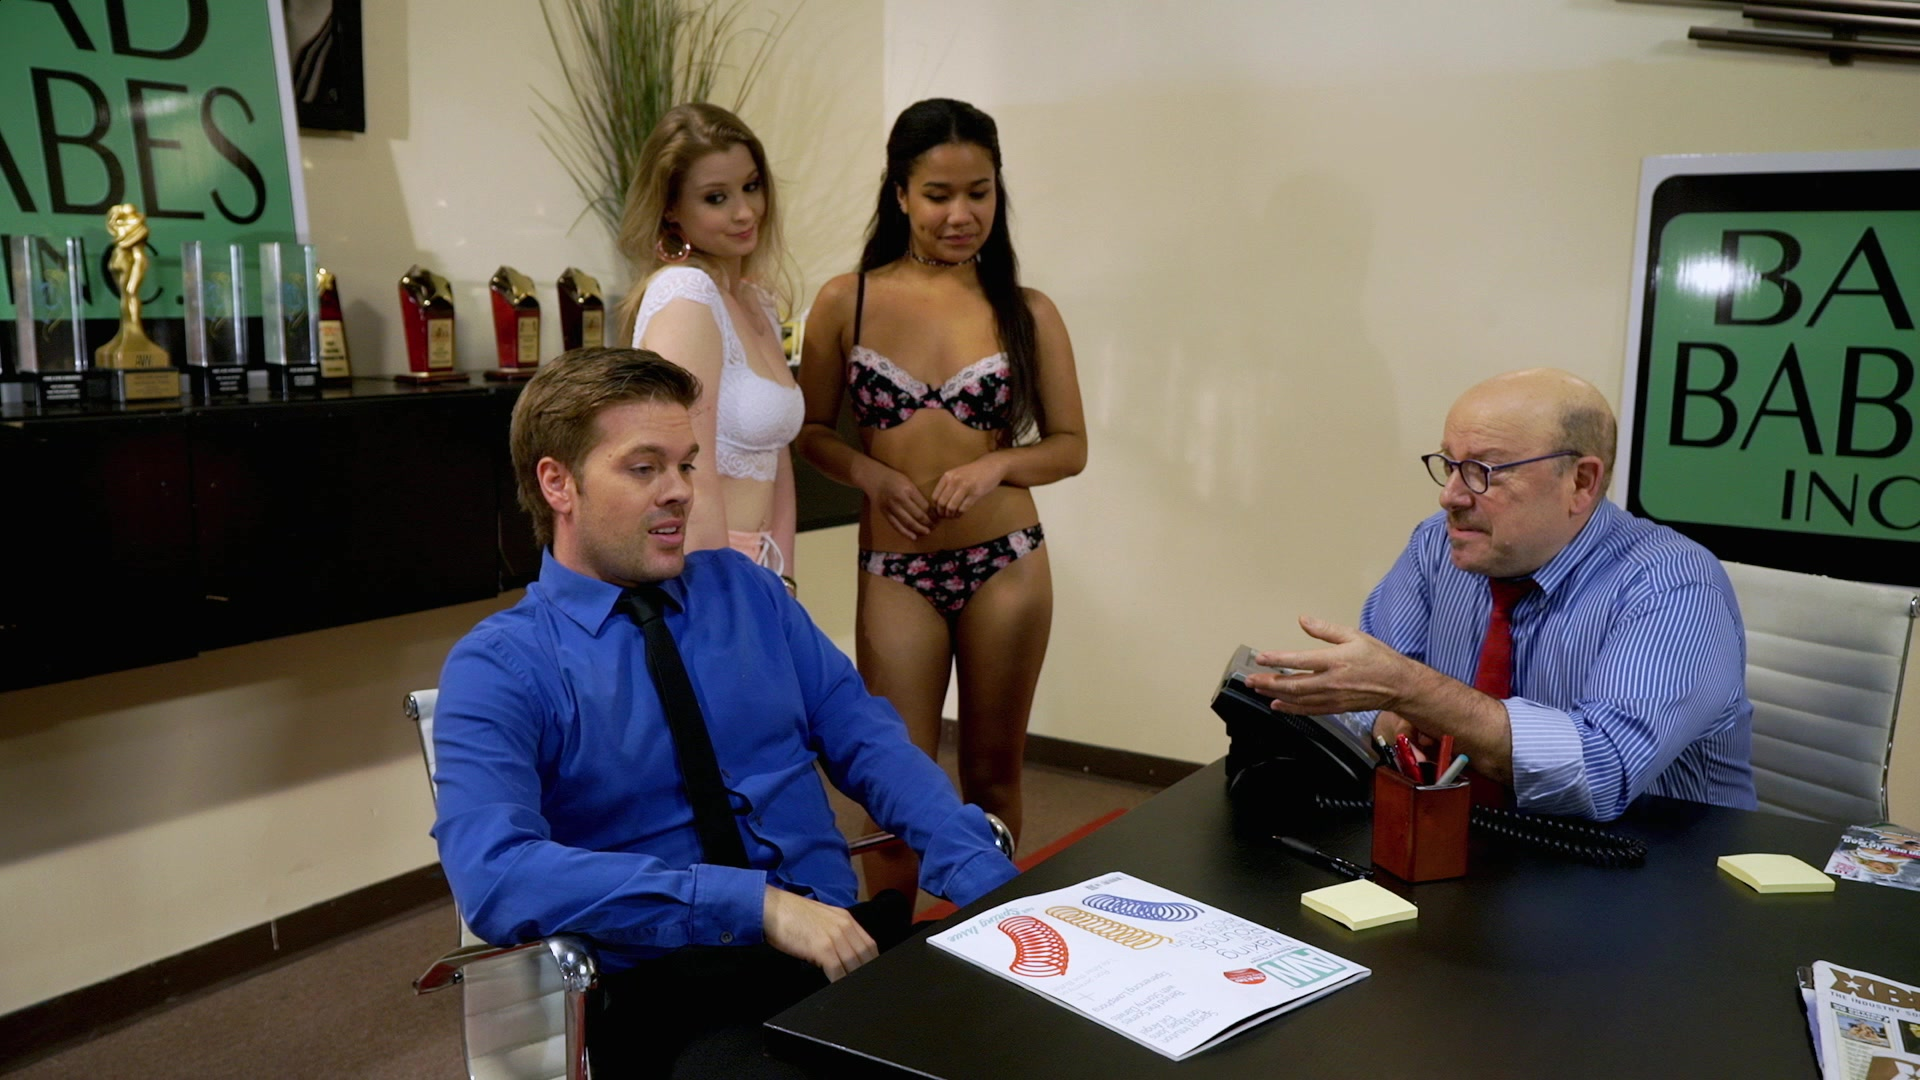 Scene with Sunny Lane, Loni Legend and Zelda Morrison - image 6 out of 14